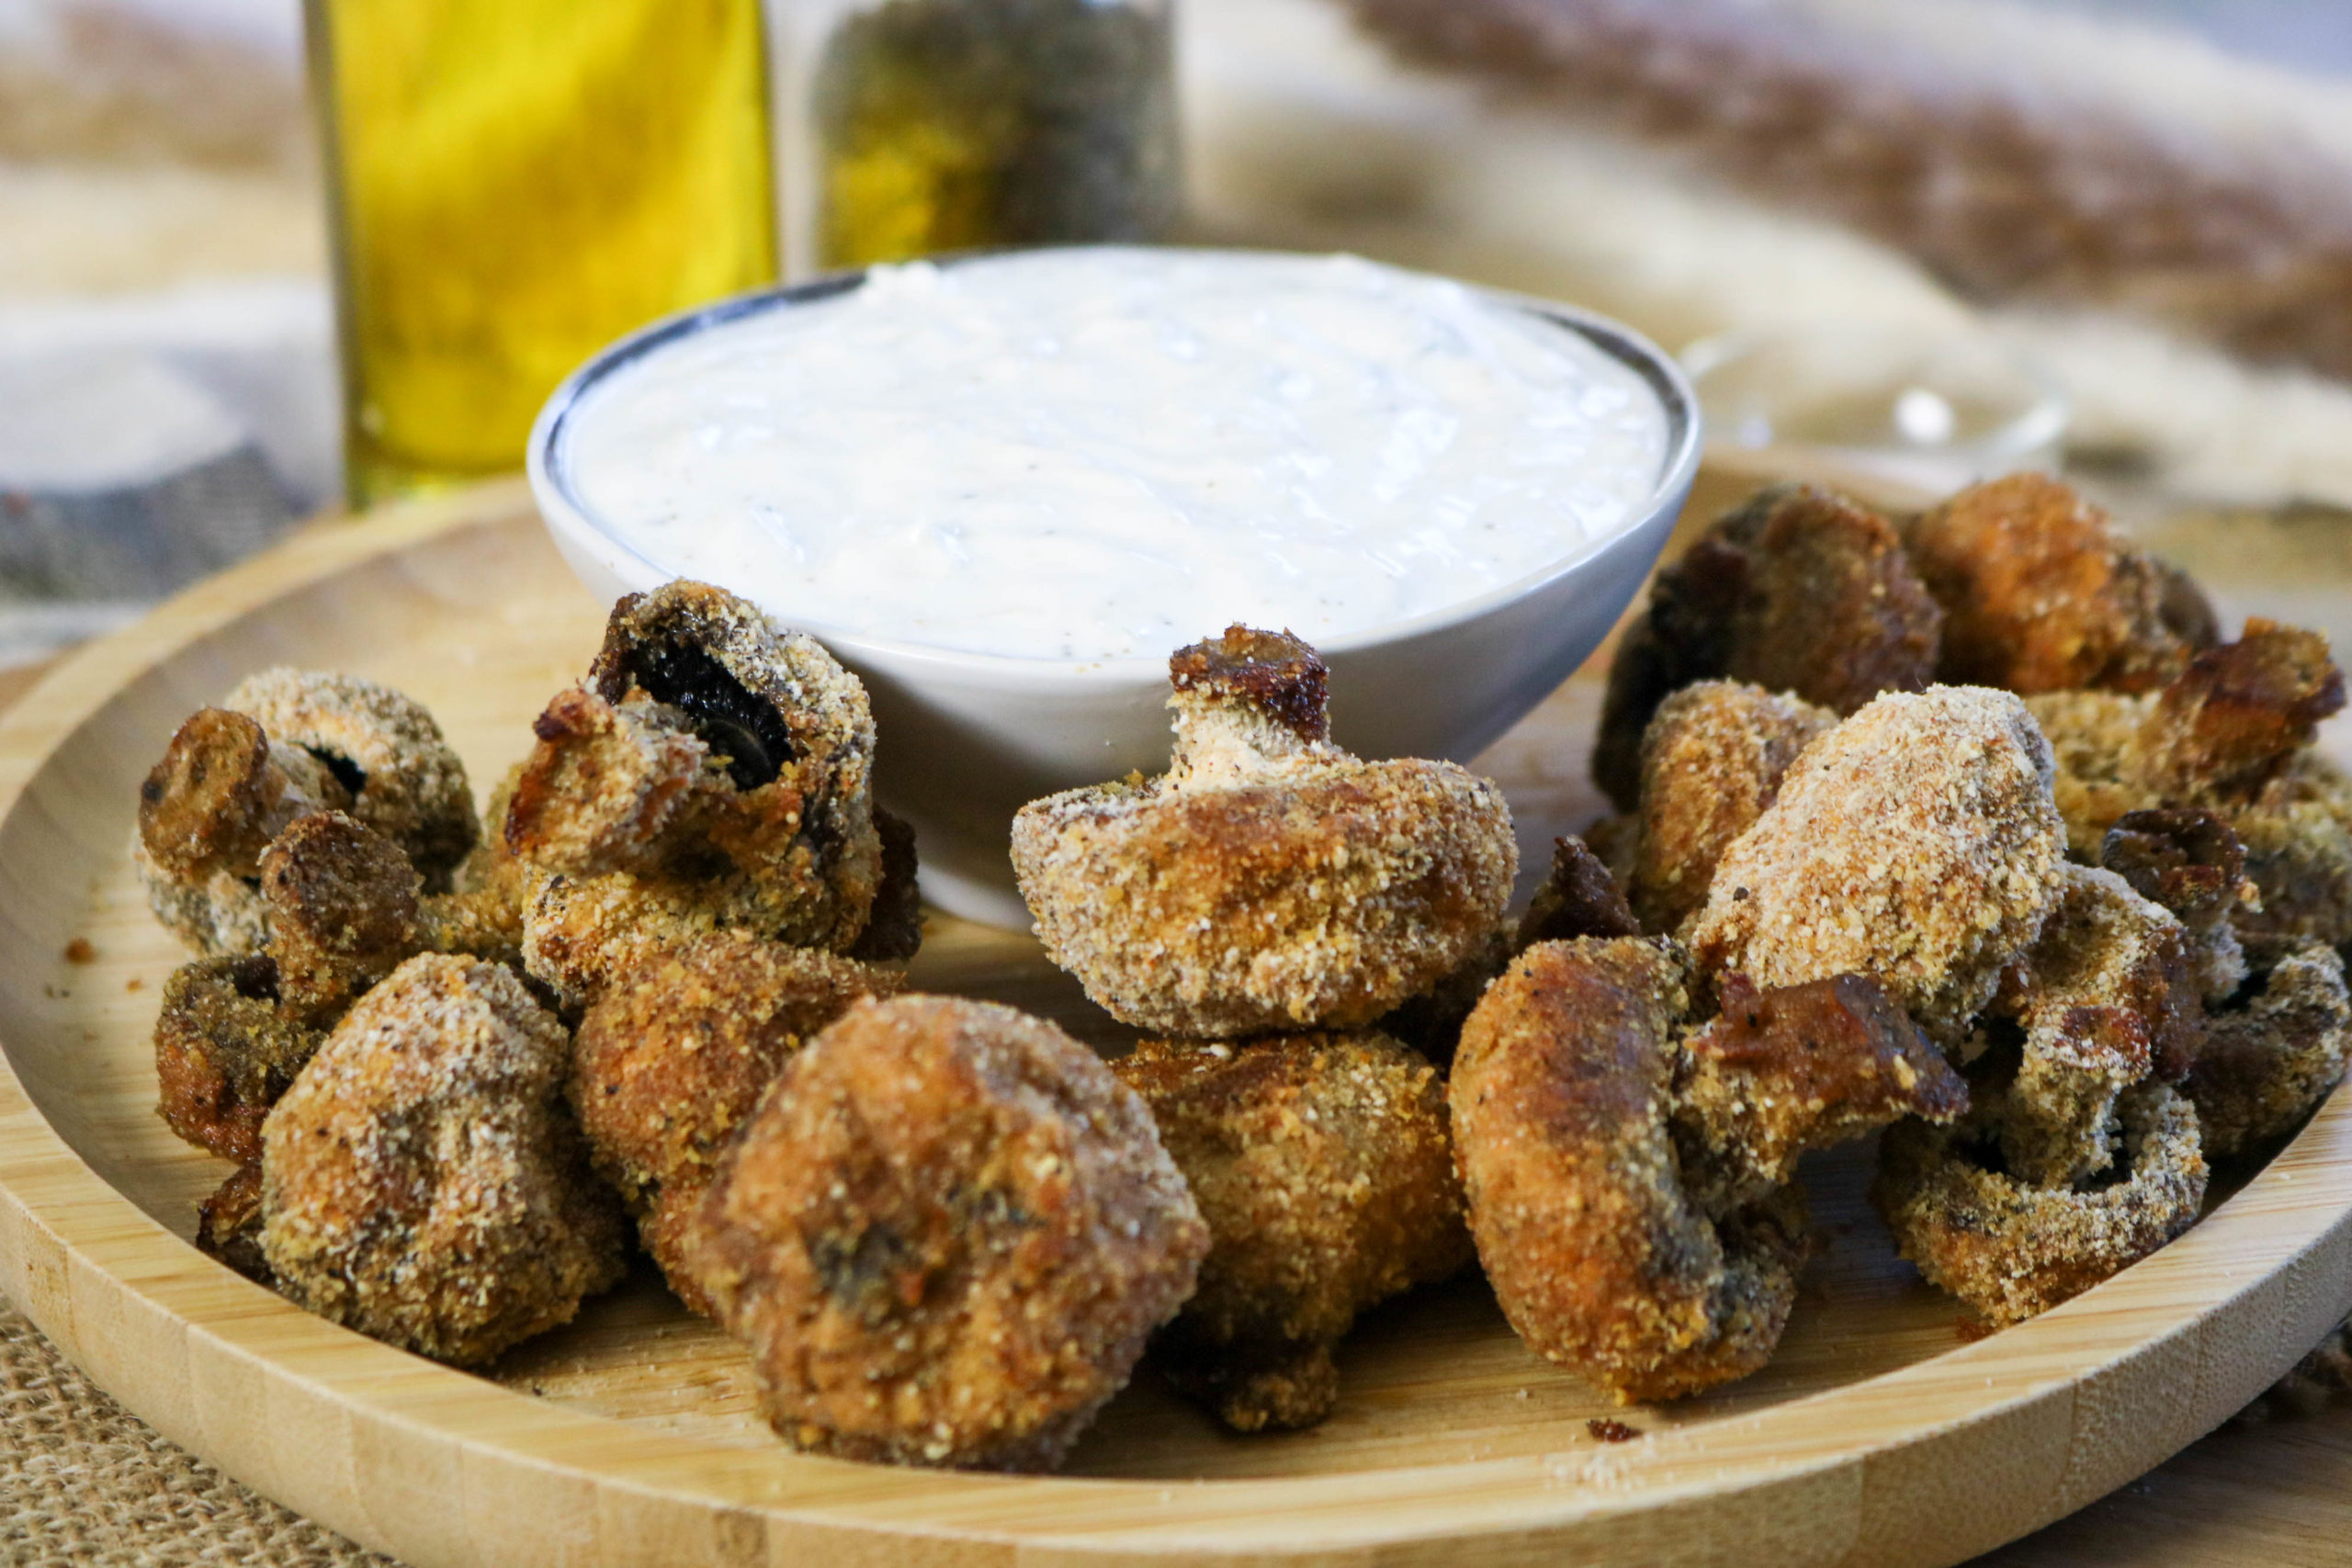 Oven Baked Mushroom Fries with Horseradish Sauce